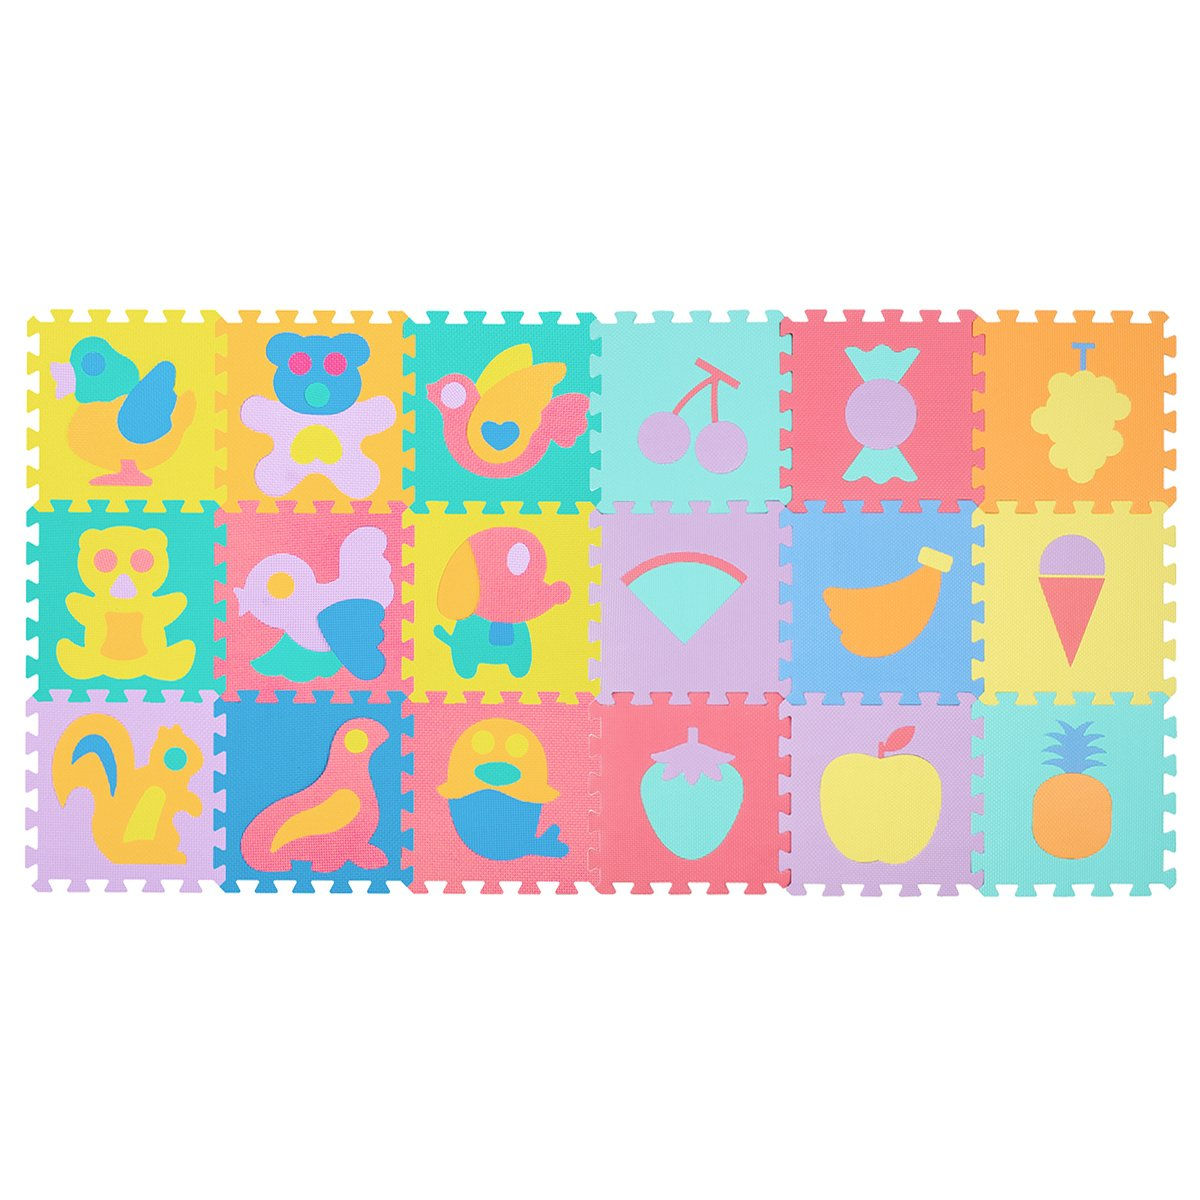 65c604ccf39 Get Quotations · Zoeshare Puzzle Play Mat for Kids Foam Mat